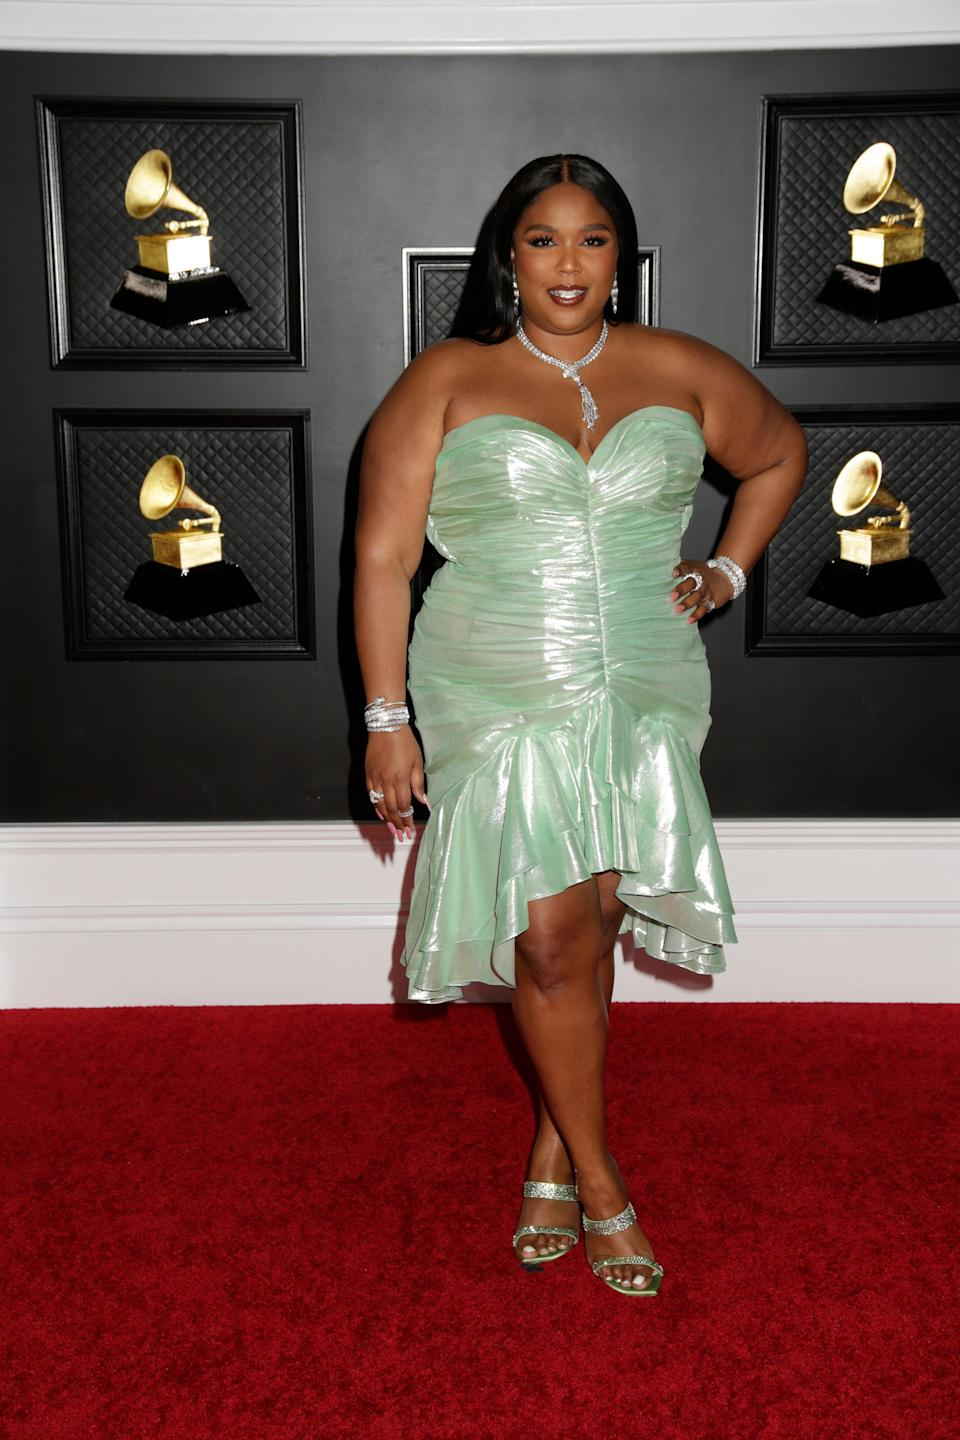 """The """"Truth Hurts'' singer rocked the Grammy red carpet wearing a seafoam green, '80s-inspired strapless ruched dress by Balmain. She accessorized with matching heeled mules by Stuart Weitzman and jewels from Bulgari."""